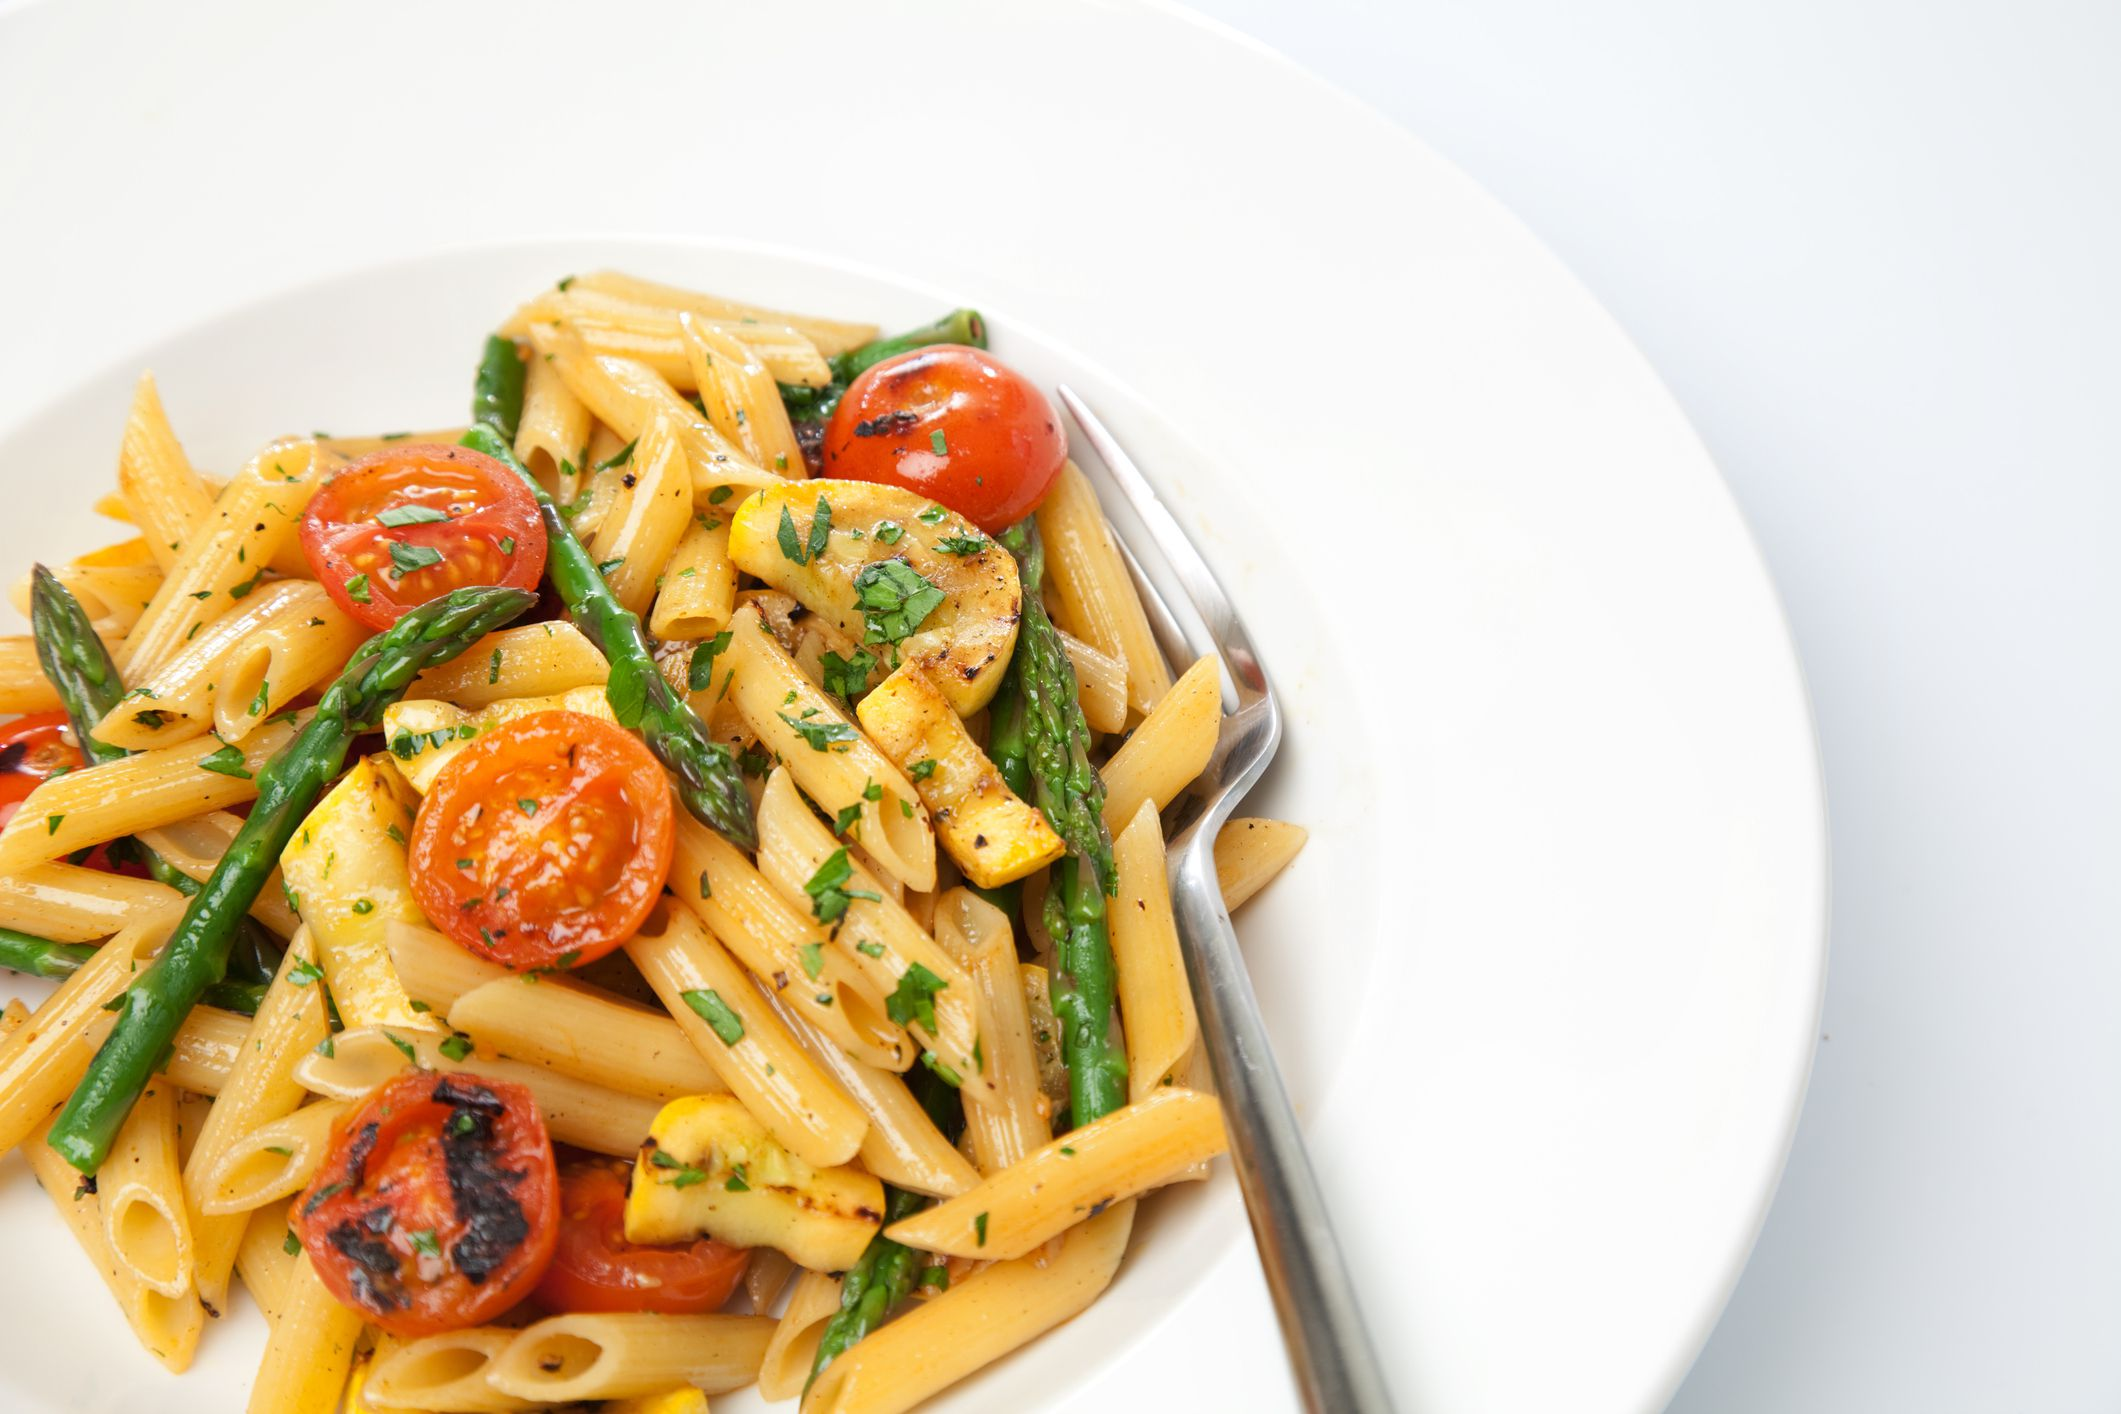 Penne Pasta with Asparagus, Pancetta and Cherry Tomatoes